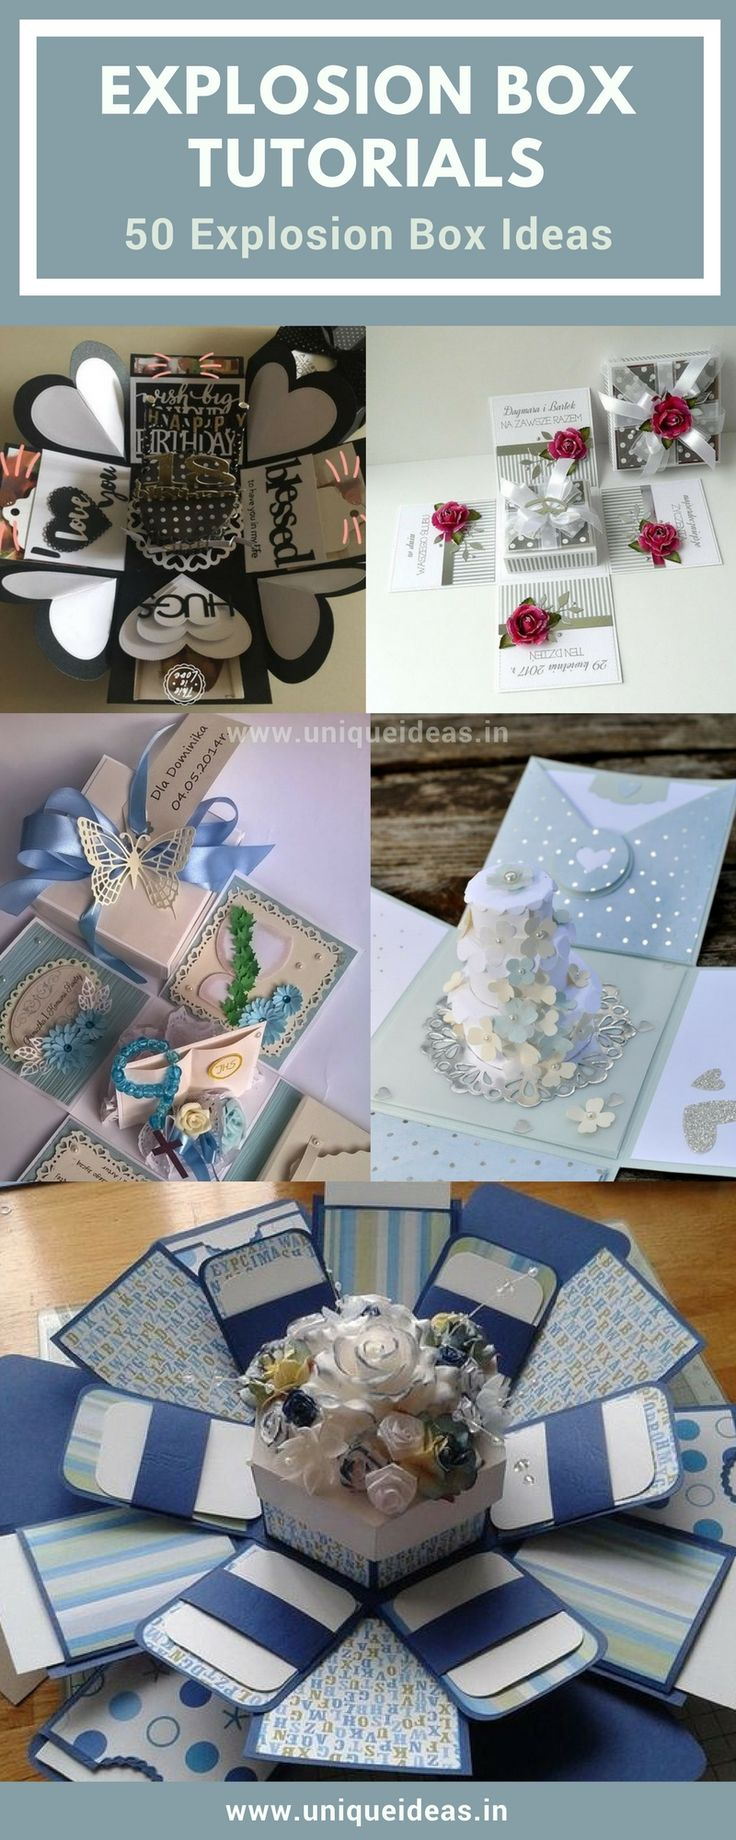 Check out the Easy Explosion Box Tutorials + 50 Explosion Box ideas  #wedding_invitations #birthday_gifts #ideas